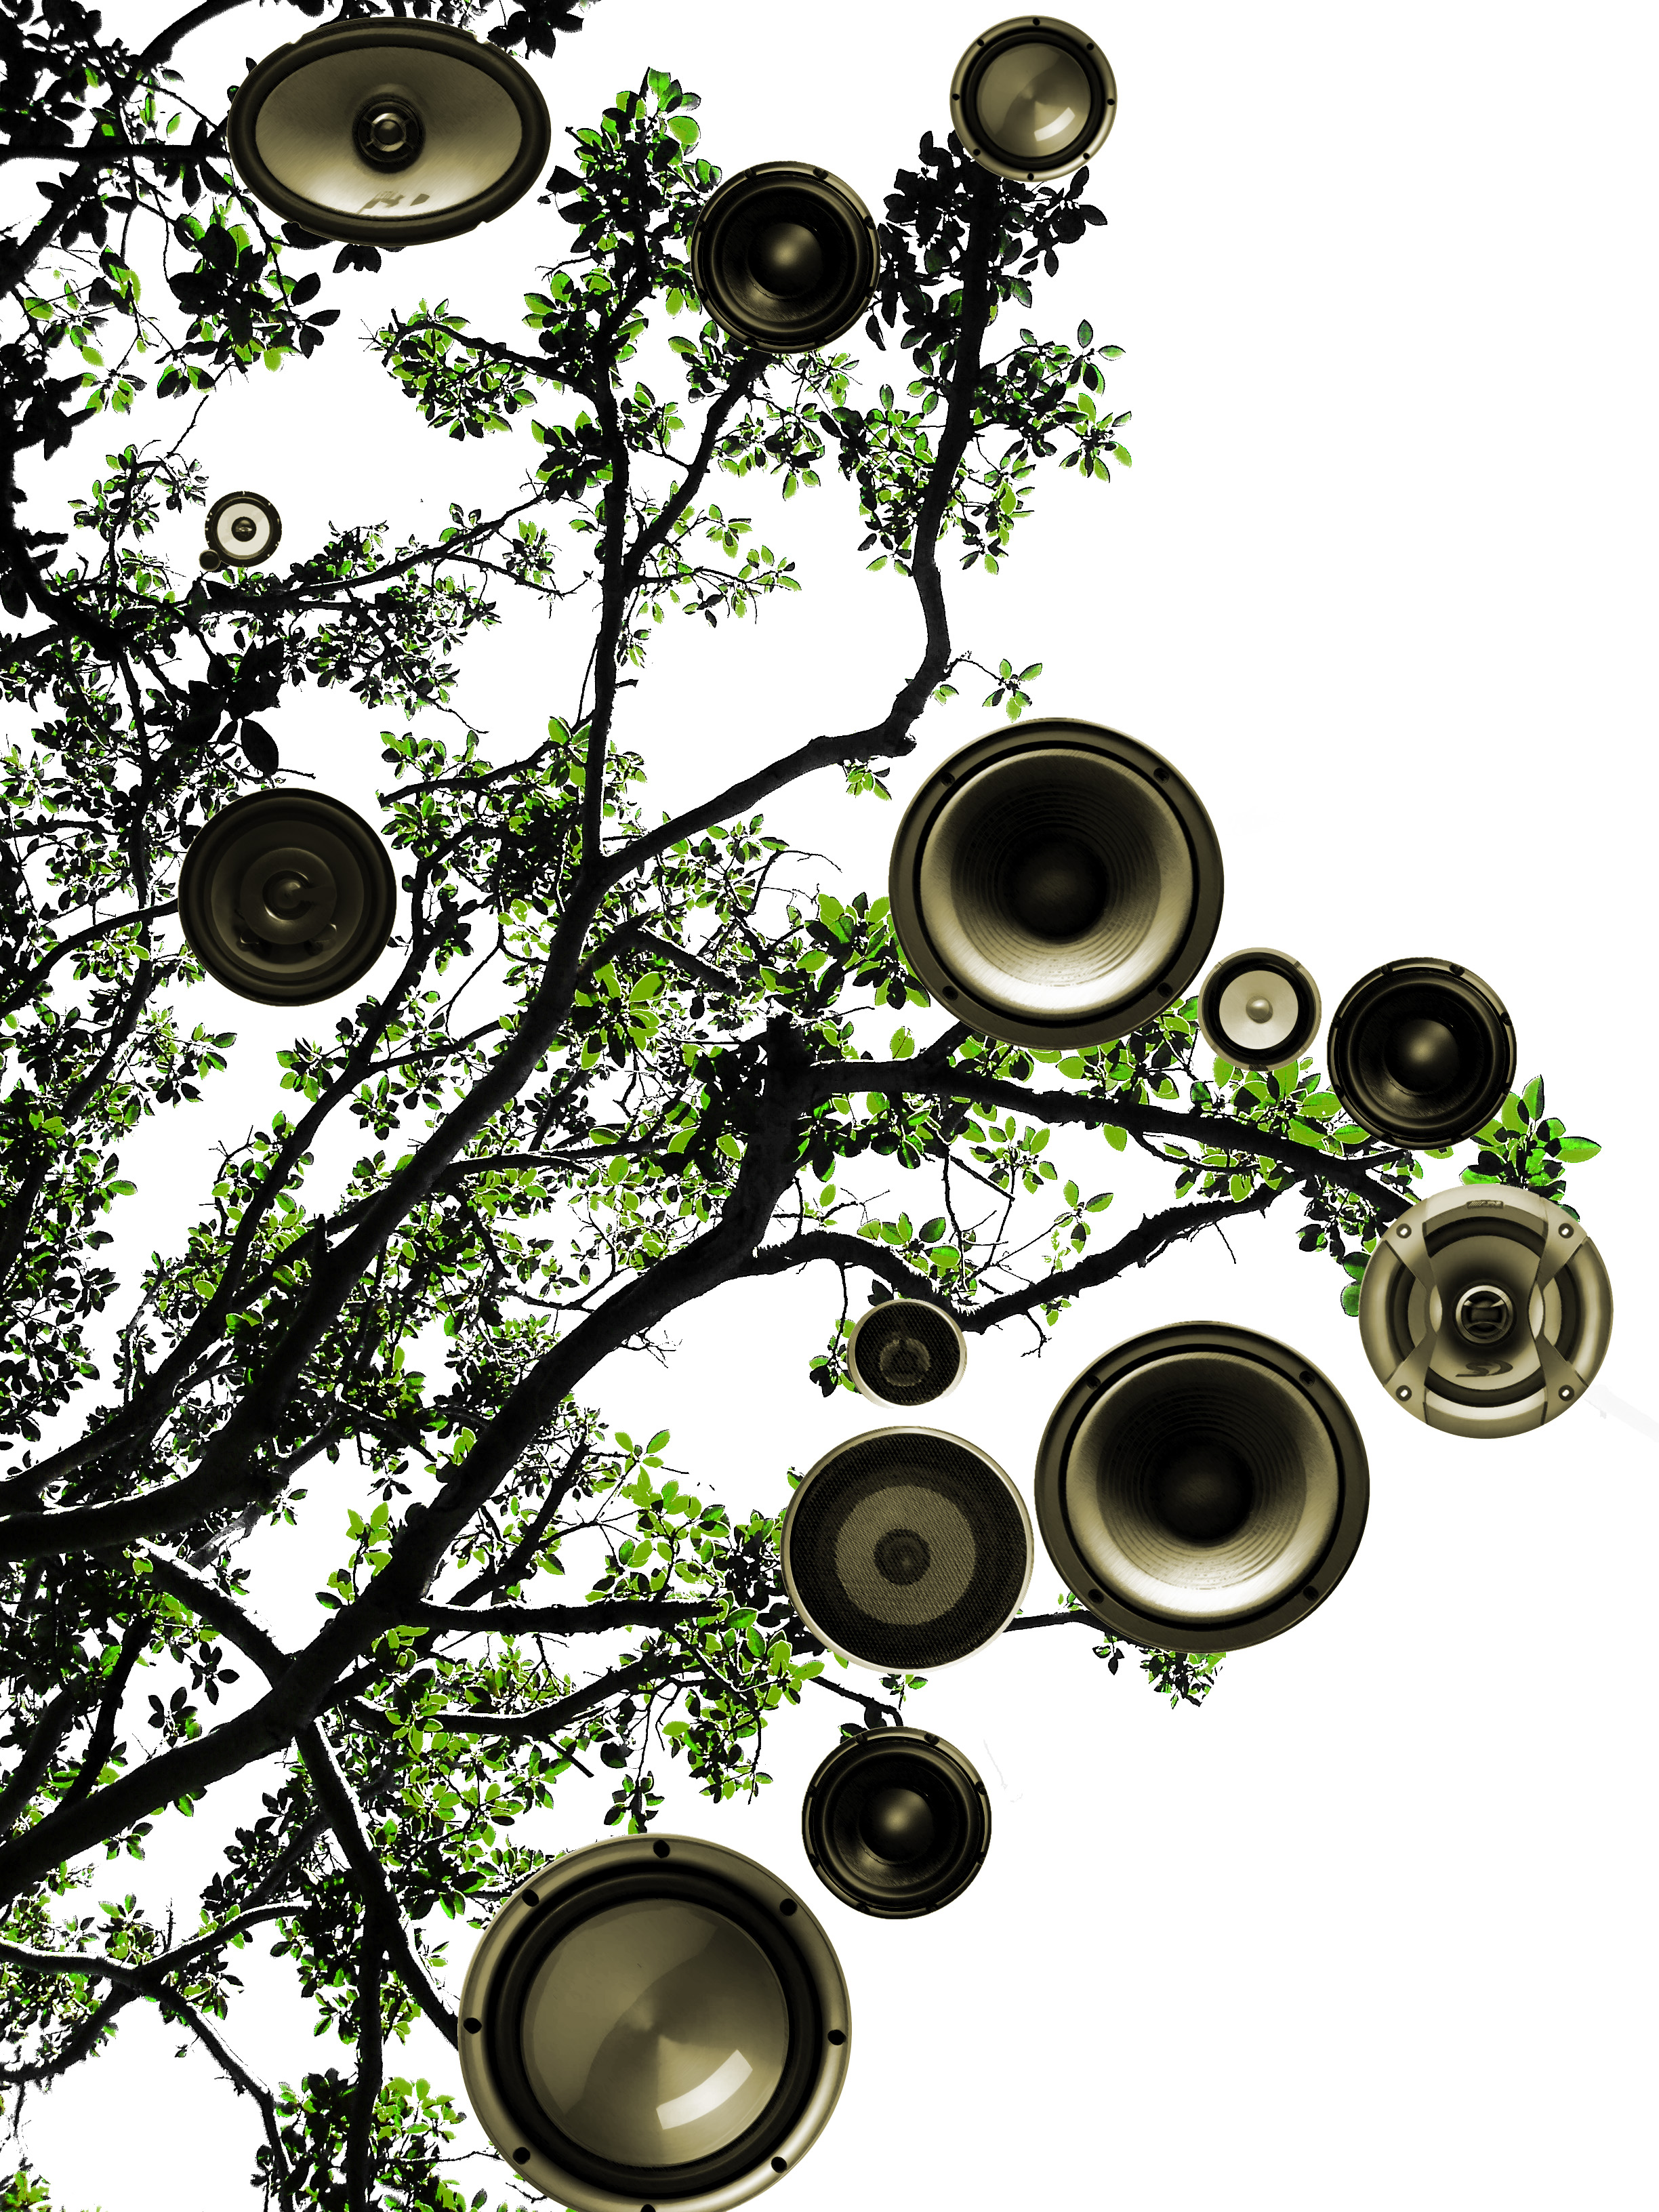 tree and speaker cones on a white background